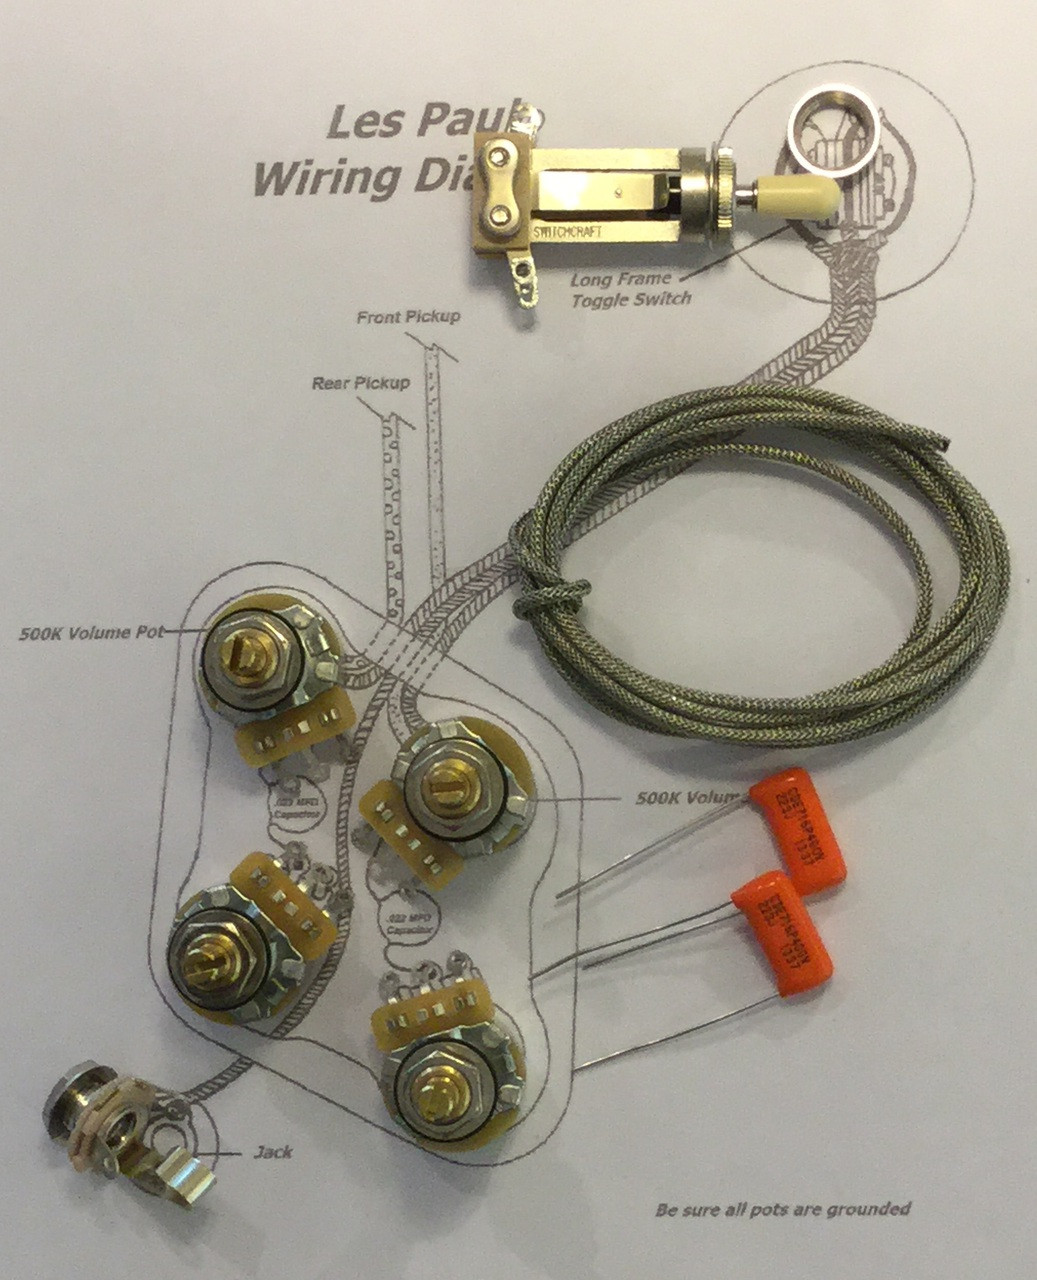 Les Paul Wiring Diagram All Parts Electrical Diagrams Vintage Kits Find U2022 Schematic